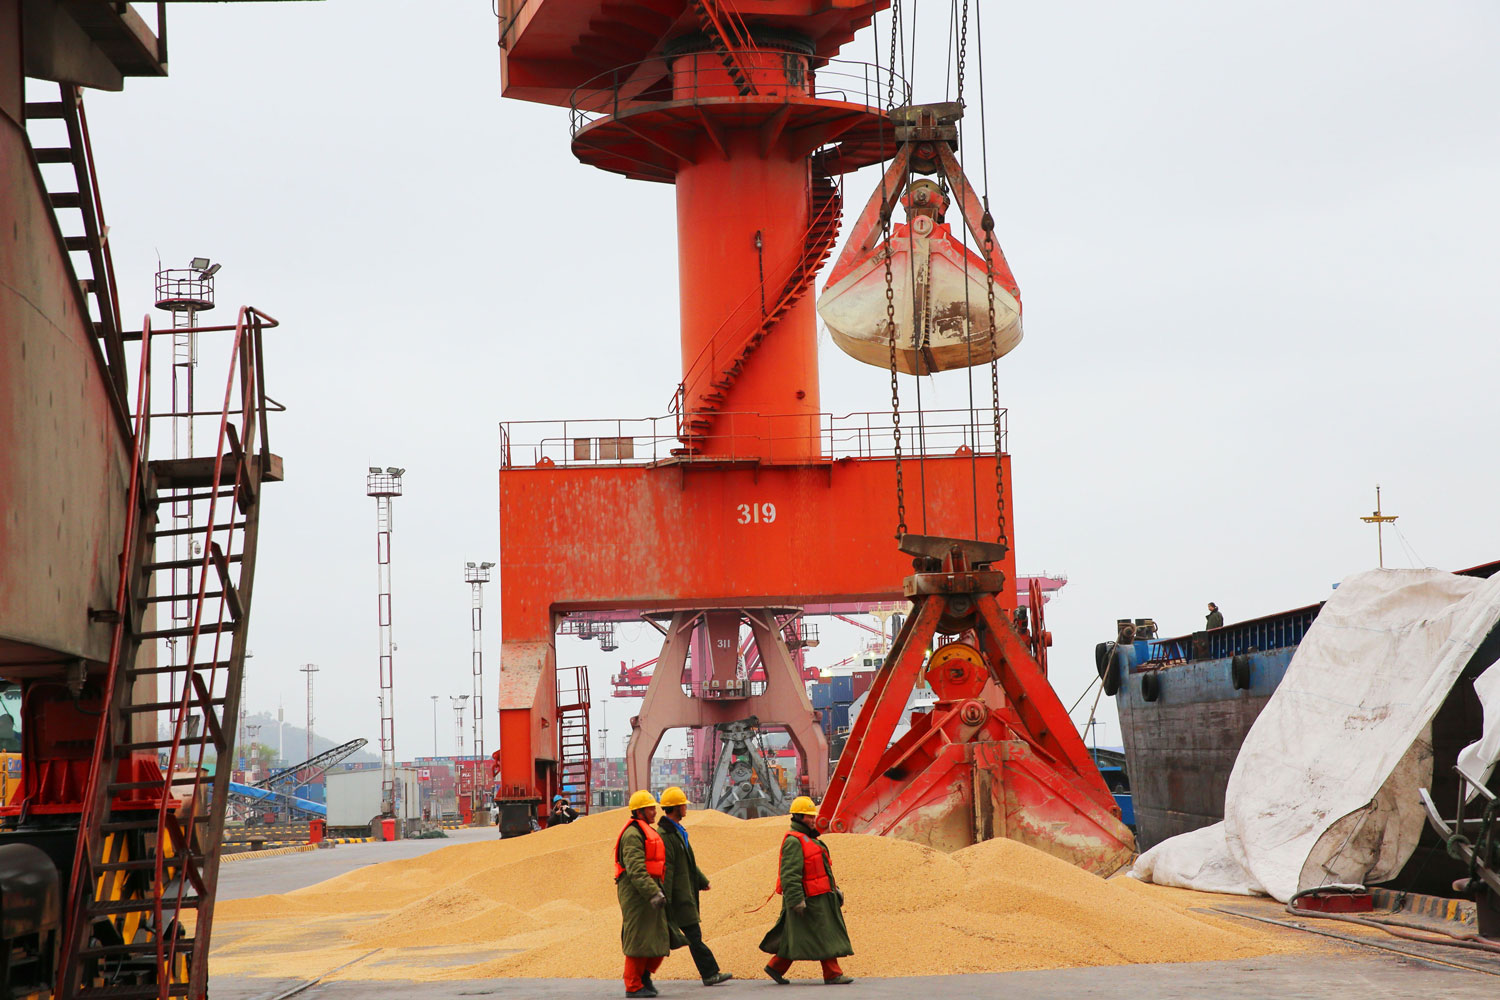 Workers walk past imported soybeans at a port in Nantong in China's eastern Jiangsu province on April 4. China unveiled plans to hit major U.S. exports —  such as soybeans, cars and small airplanes — with retaliatory tariffs worth $50 billion in an escalating trade duel between the world's top economies. (AFP/Getty Images)